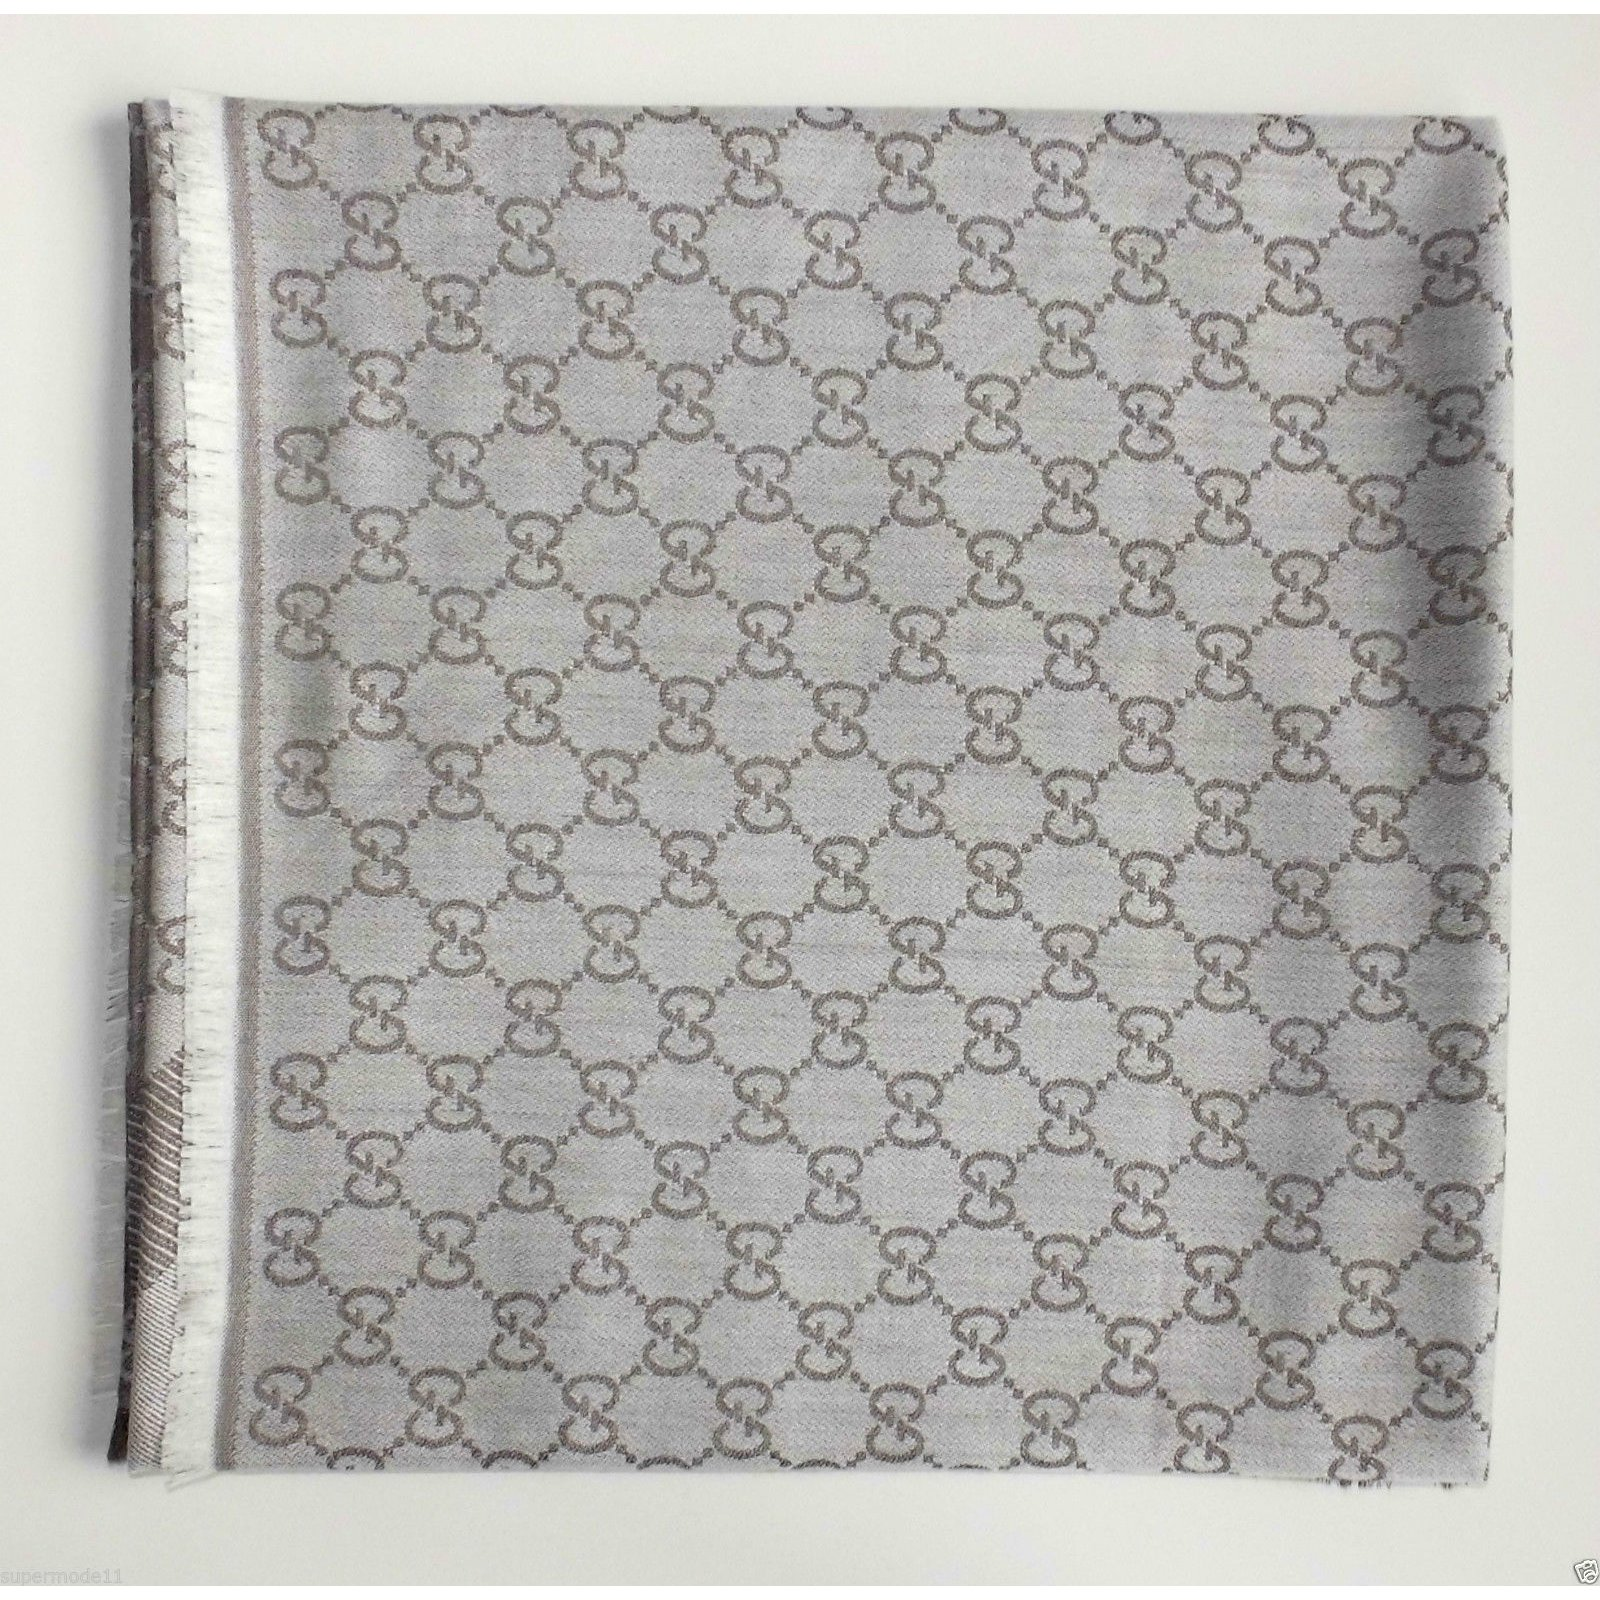 Gucci Ggeweb Gucci New Scarf Scarves Silkwool Multiple Colors Ref